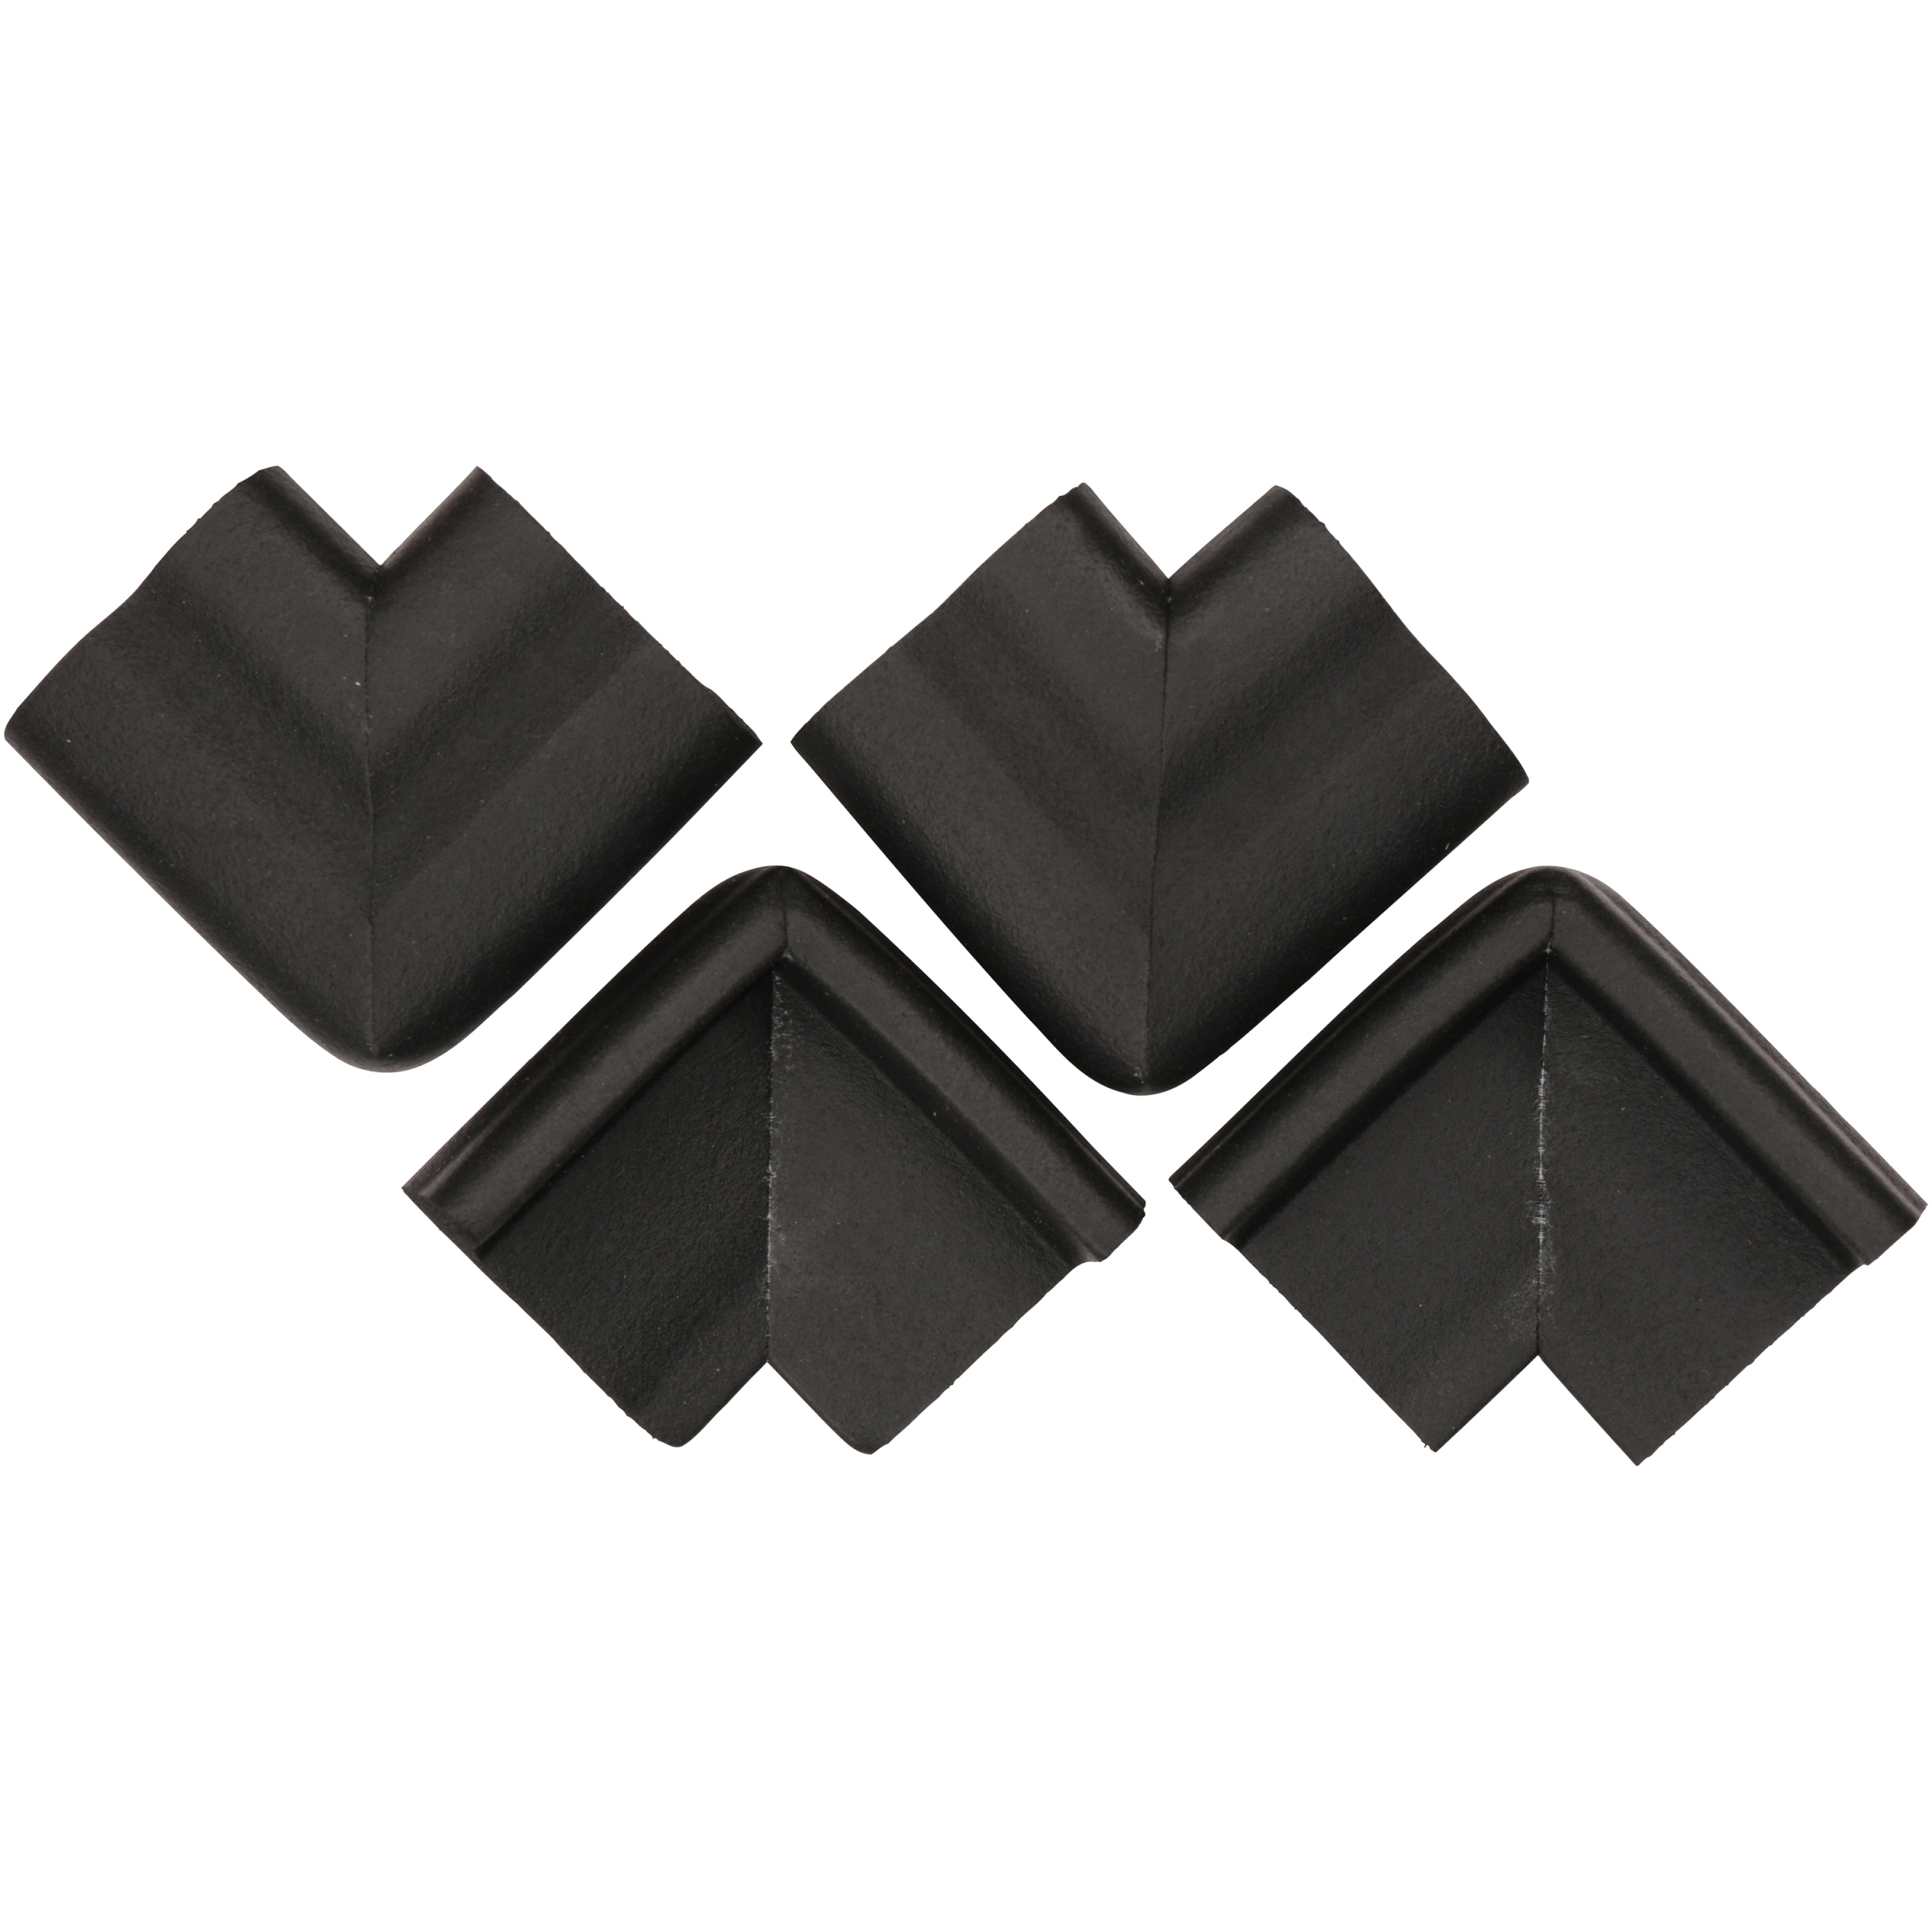 KidKusion® Black Jumbo Corner Cushions 4 ct Pack